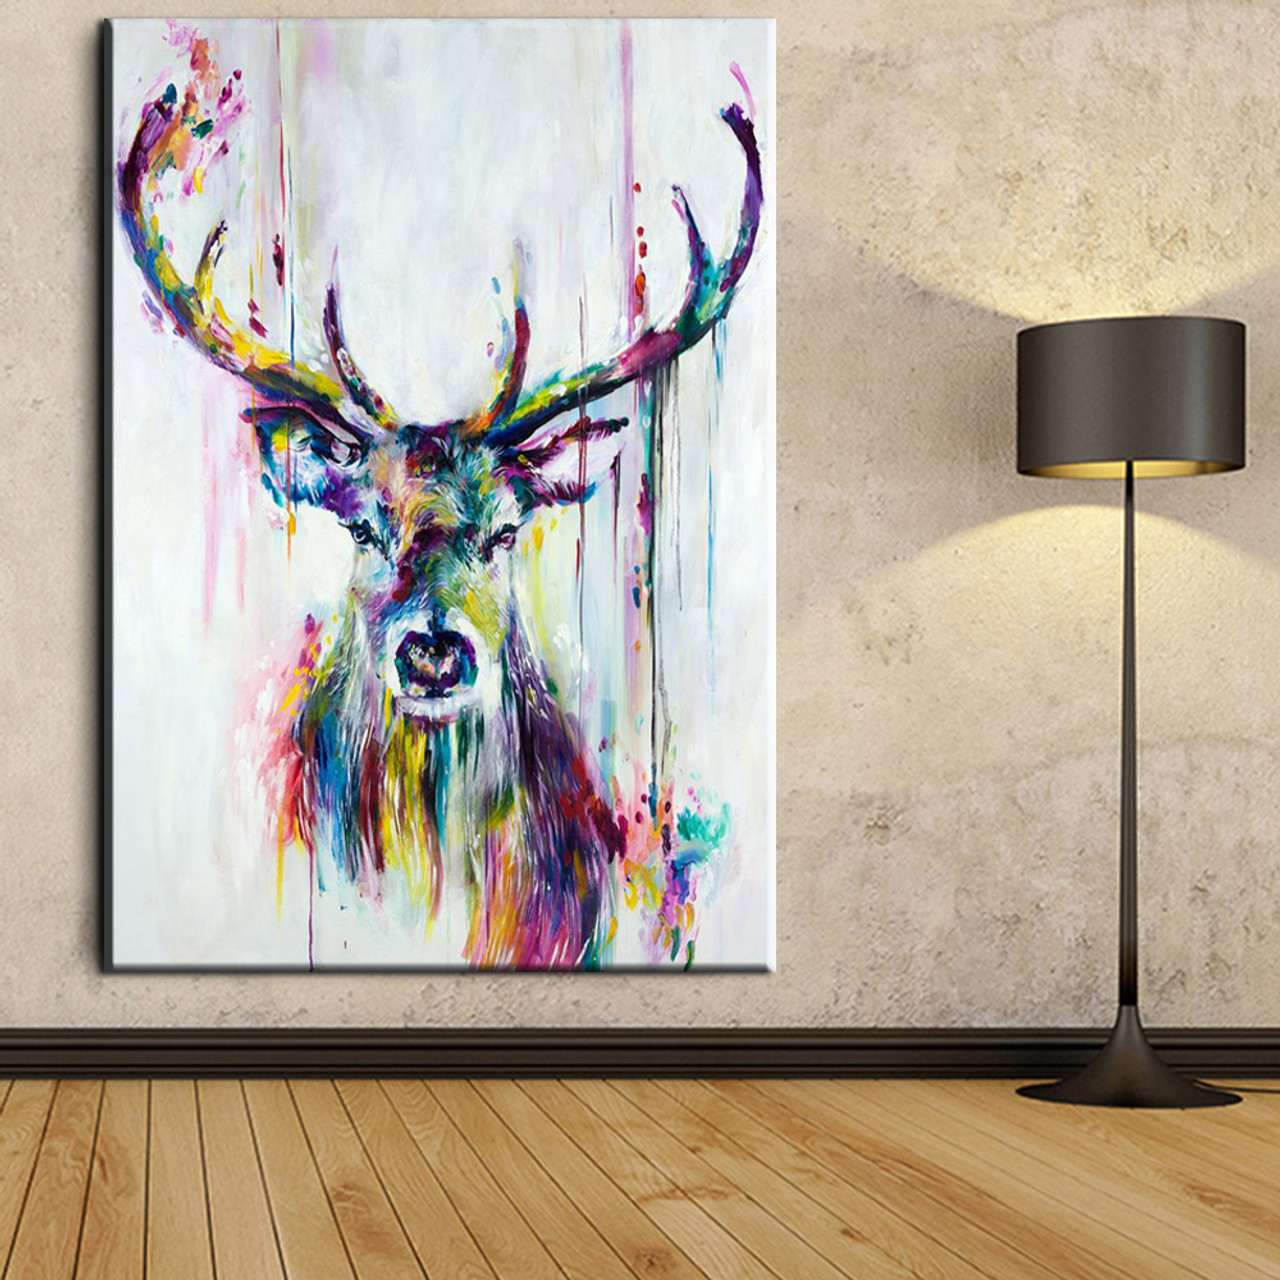 xh181 Big Triptych Watercolor Deer Head Posters Print Abstract ...